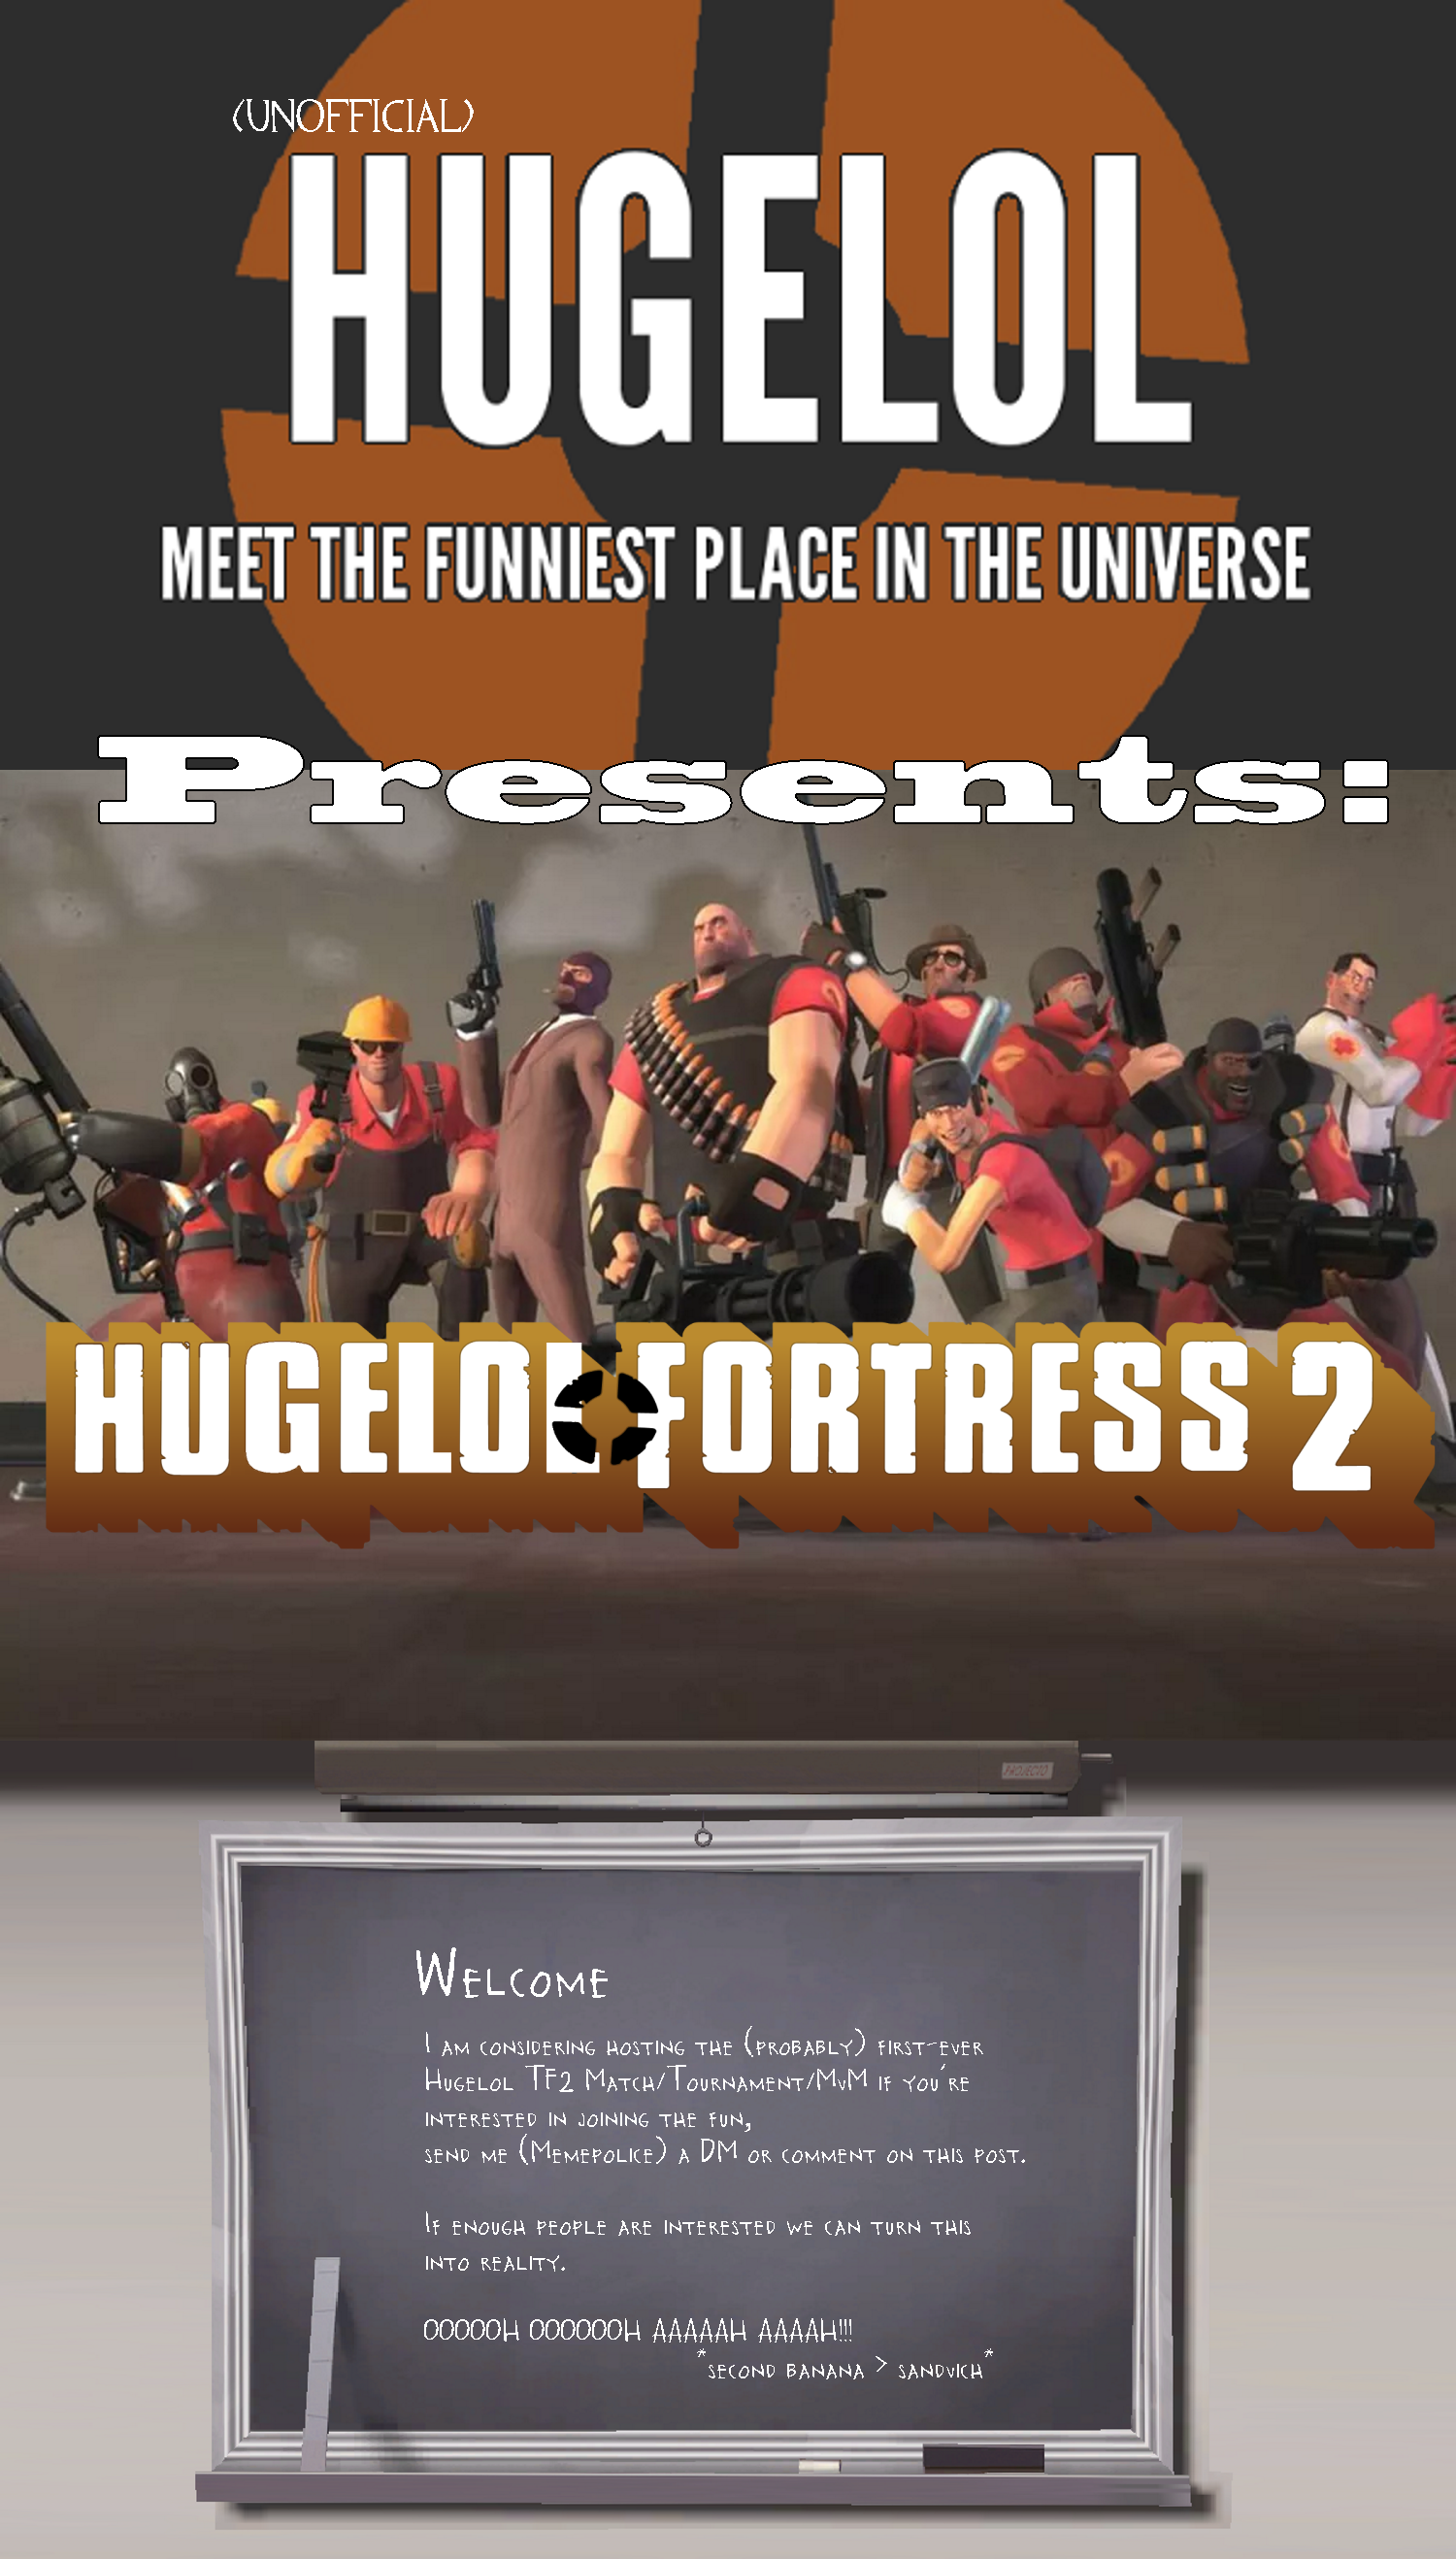 Hugelol Team Fortress Tournament coming soon